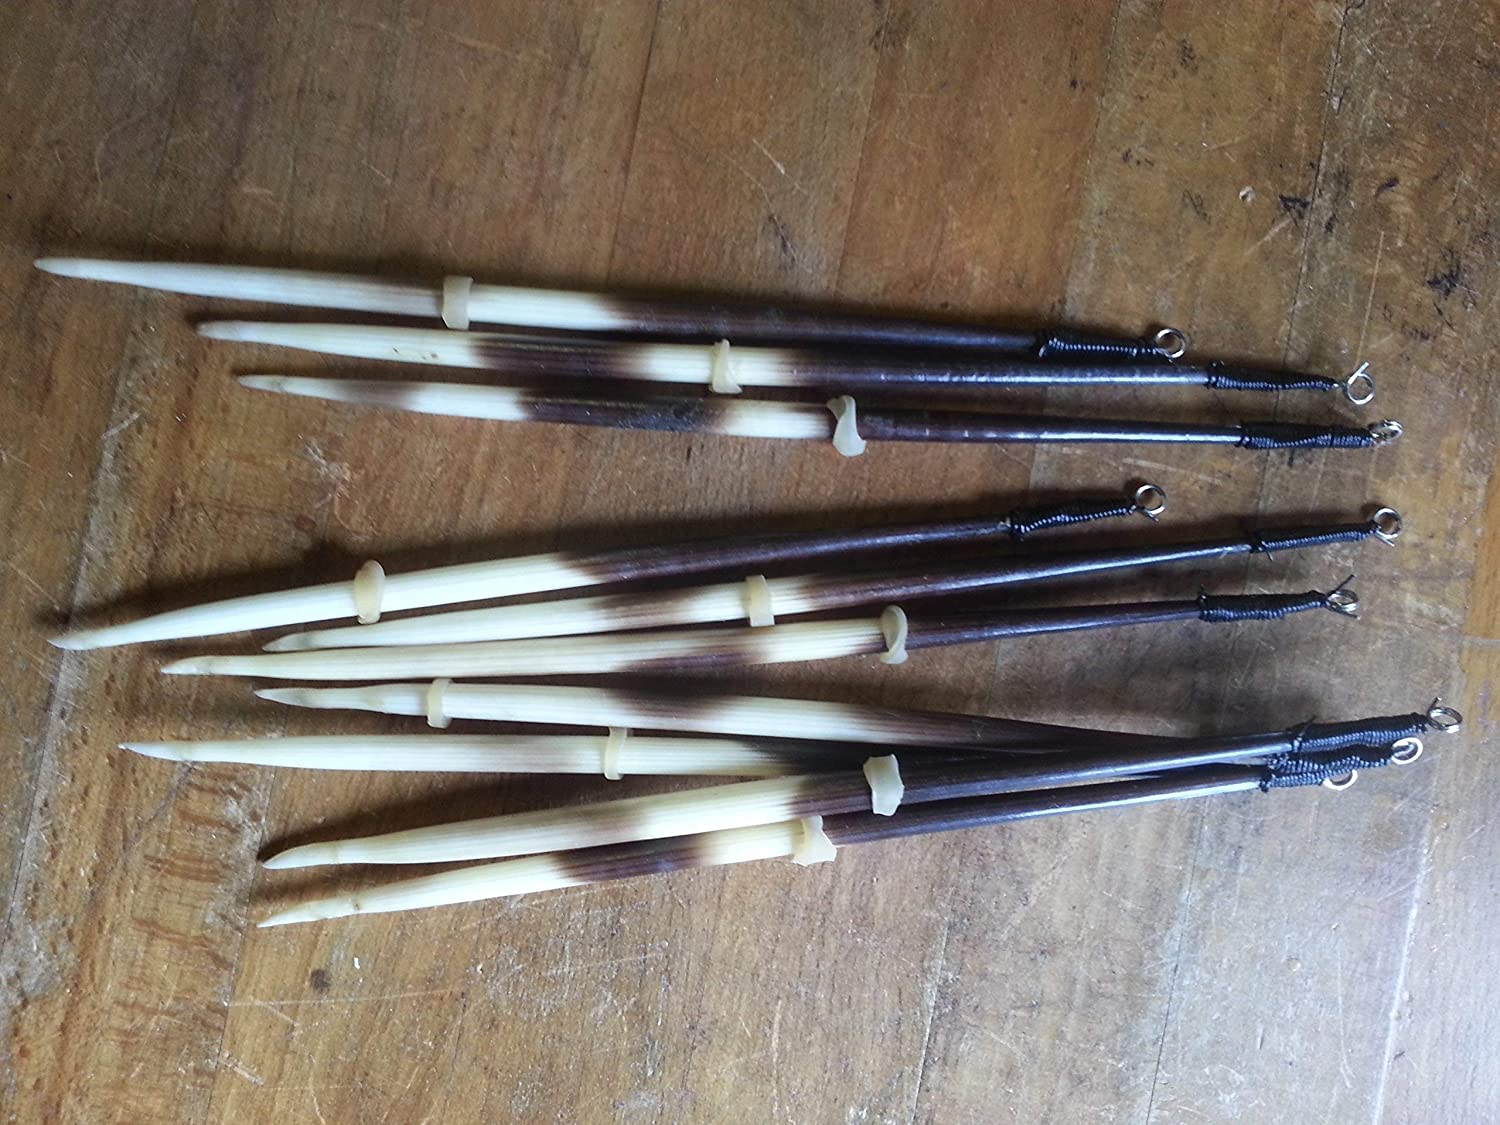 5 Porcupine Quill Fishing Floats, Real Porcupine Quills as pictured. Approximately 7 to 8 inch length.